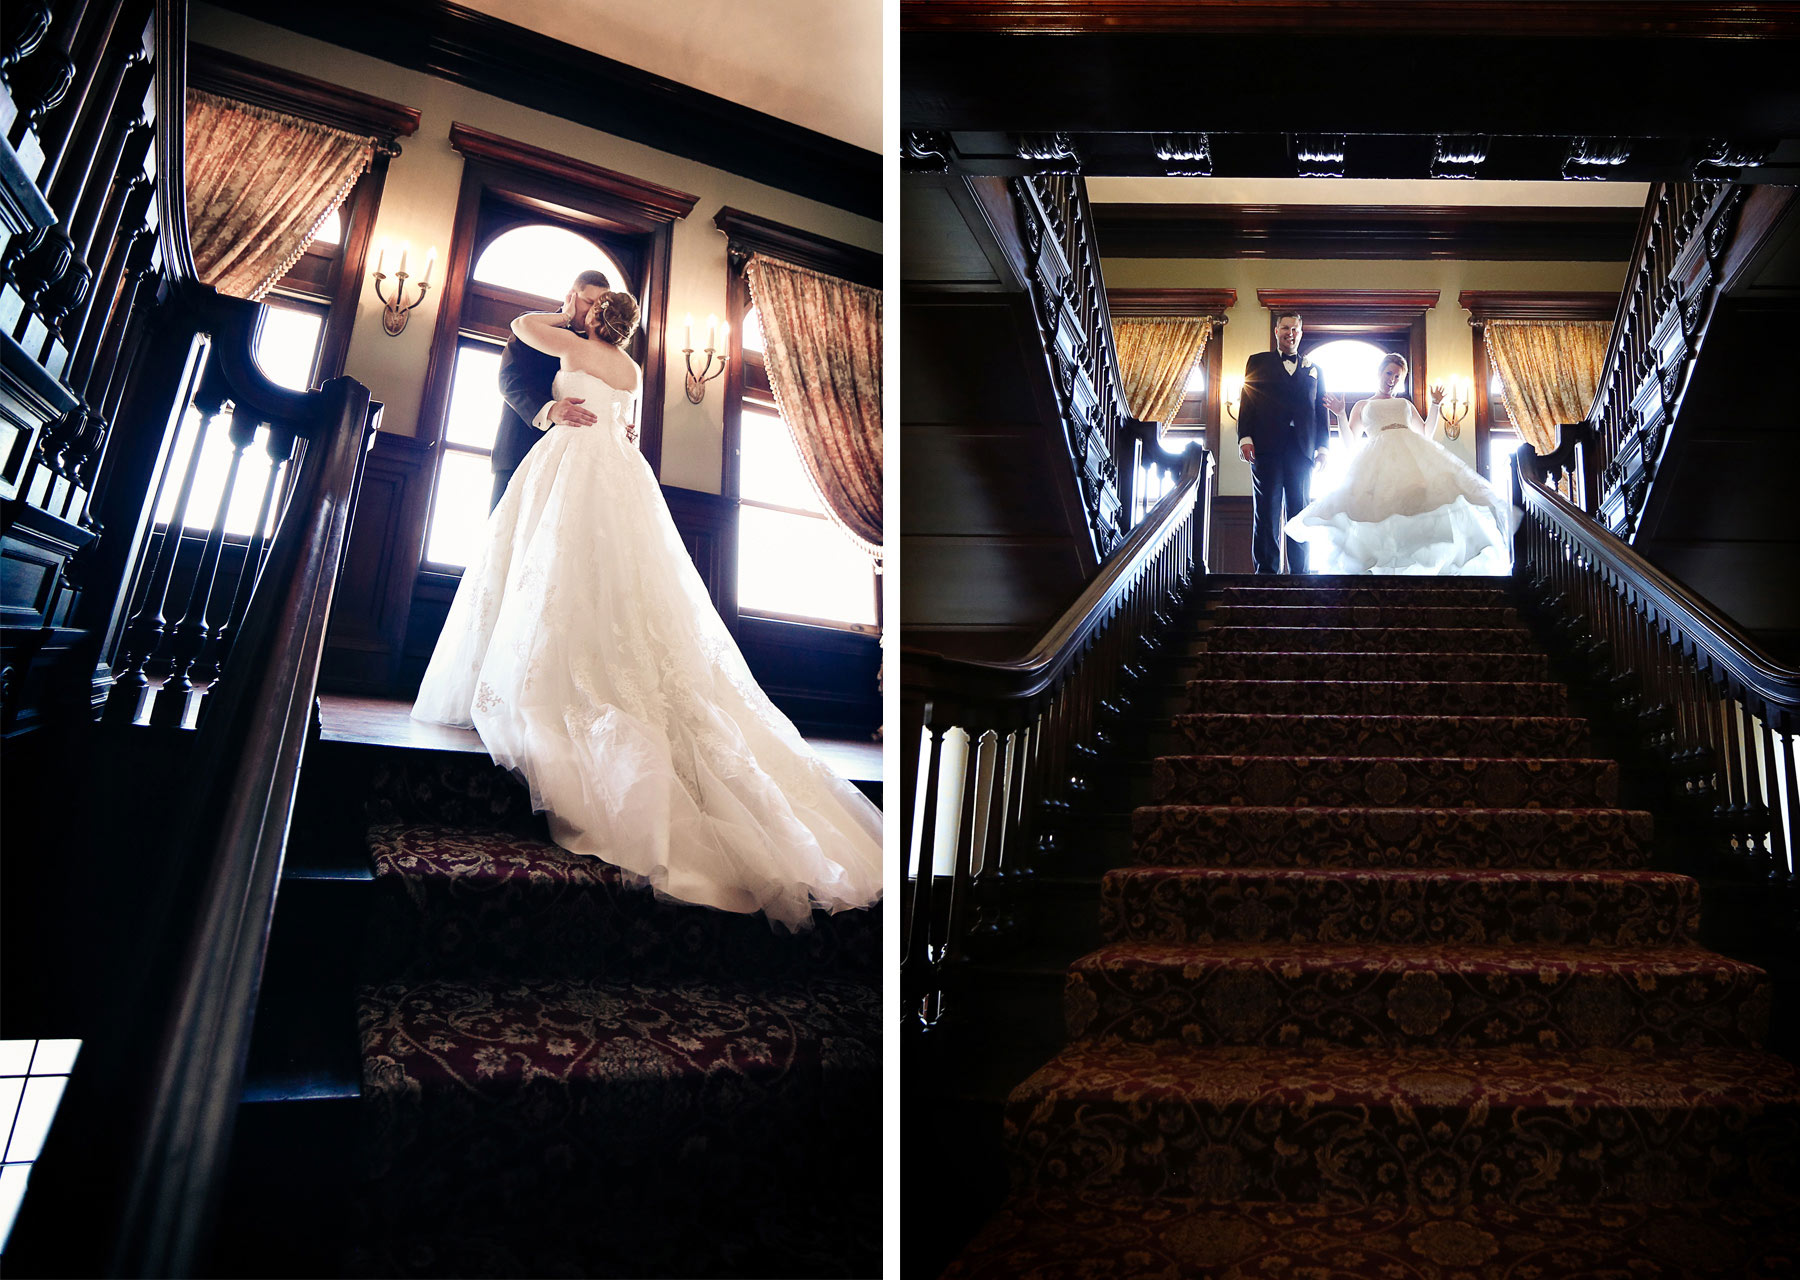 06-Minneapolis-Minnesota-Wedding-Photography-by-Vick-Photography-Semple-Mansion-First-Look-Caitlin-&-Derrick.jpg